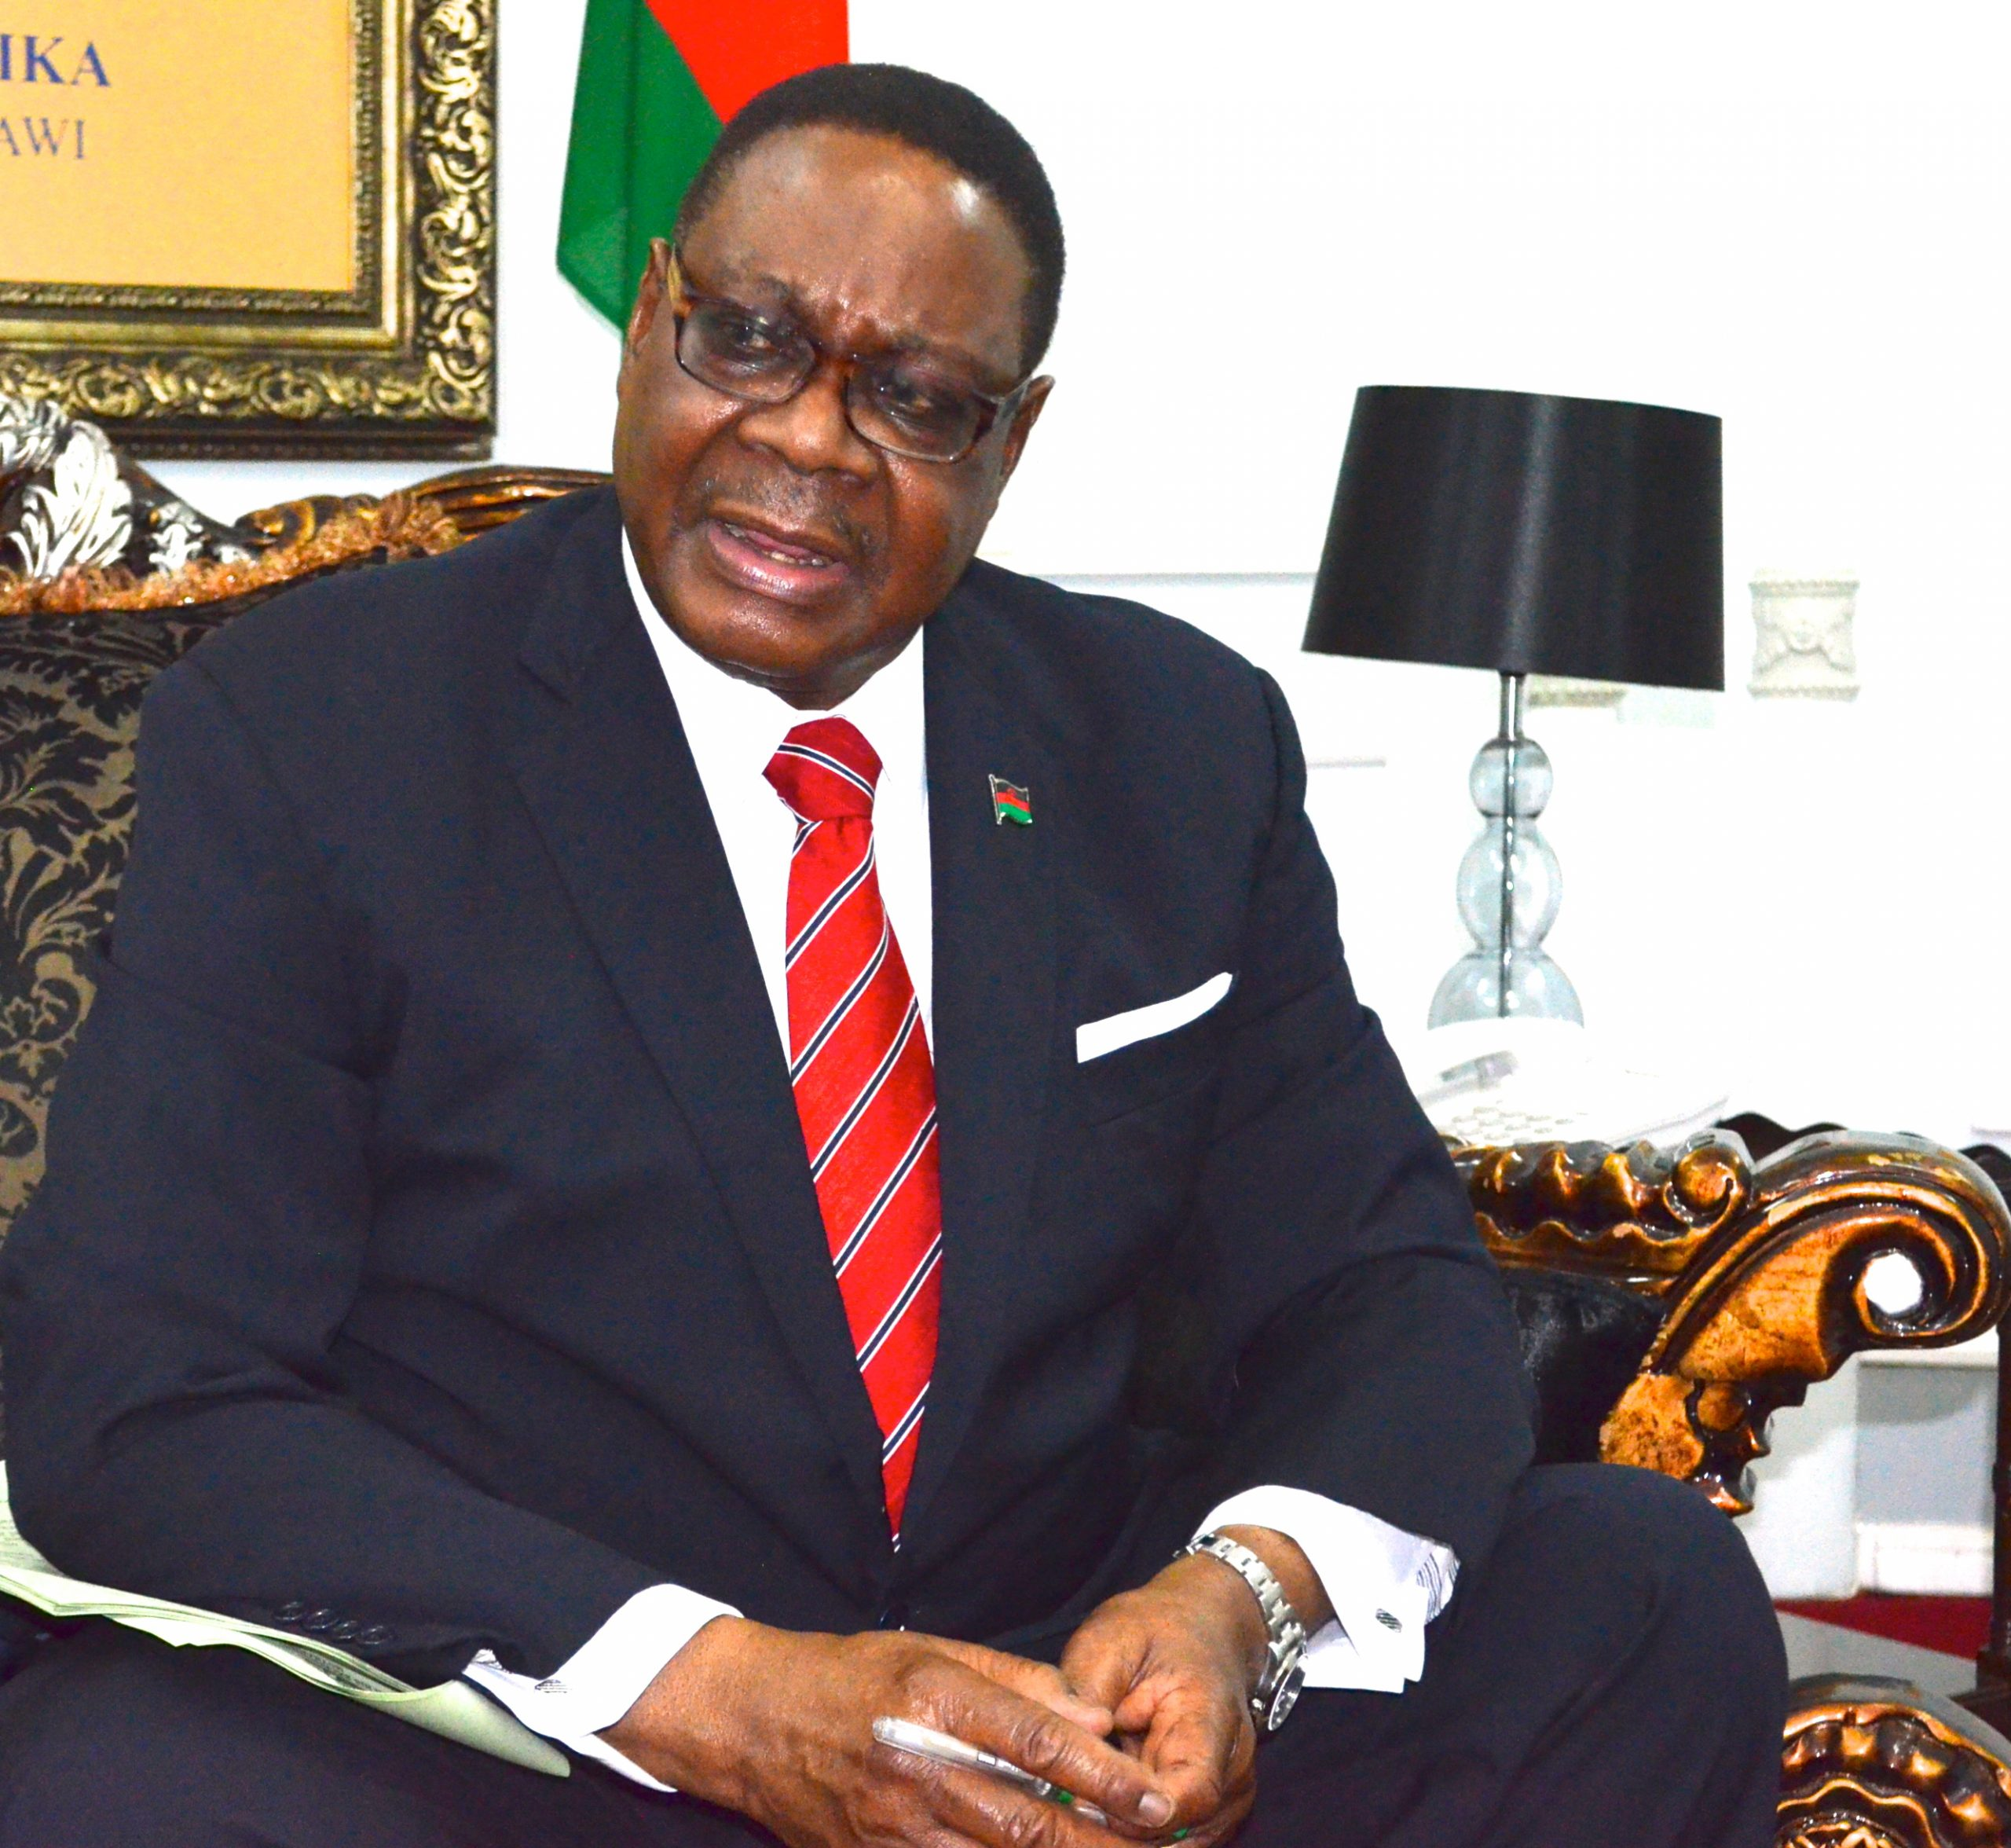 If Malawi's President Mutharika is a dictator, he has done a poor job of it